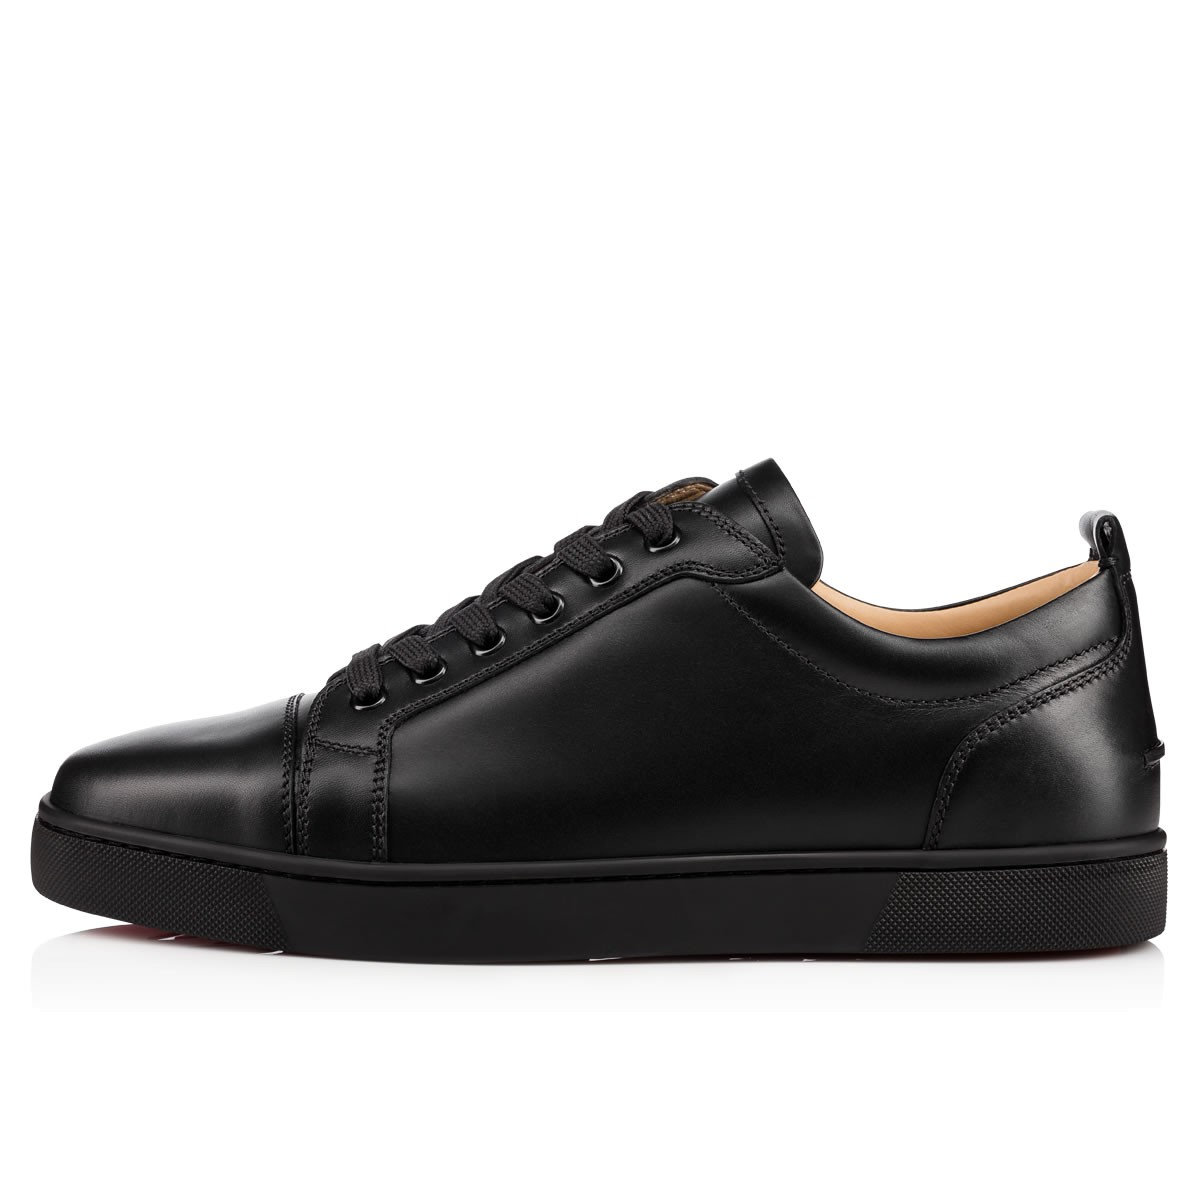 9dd5e873dc6 Louis Junior Black/Black Leather - Men Shoes - Christian Louboutin